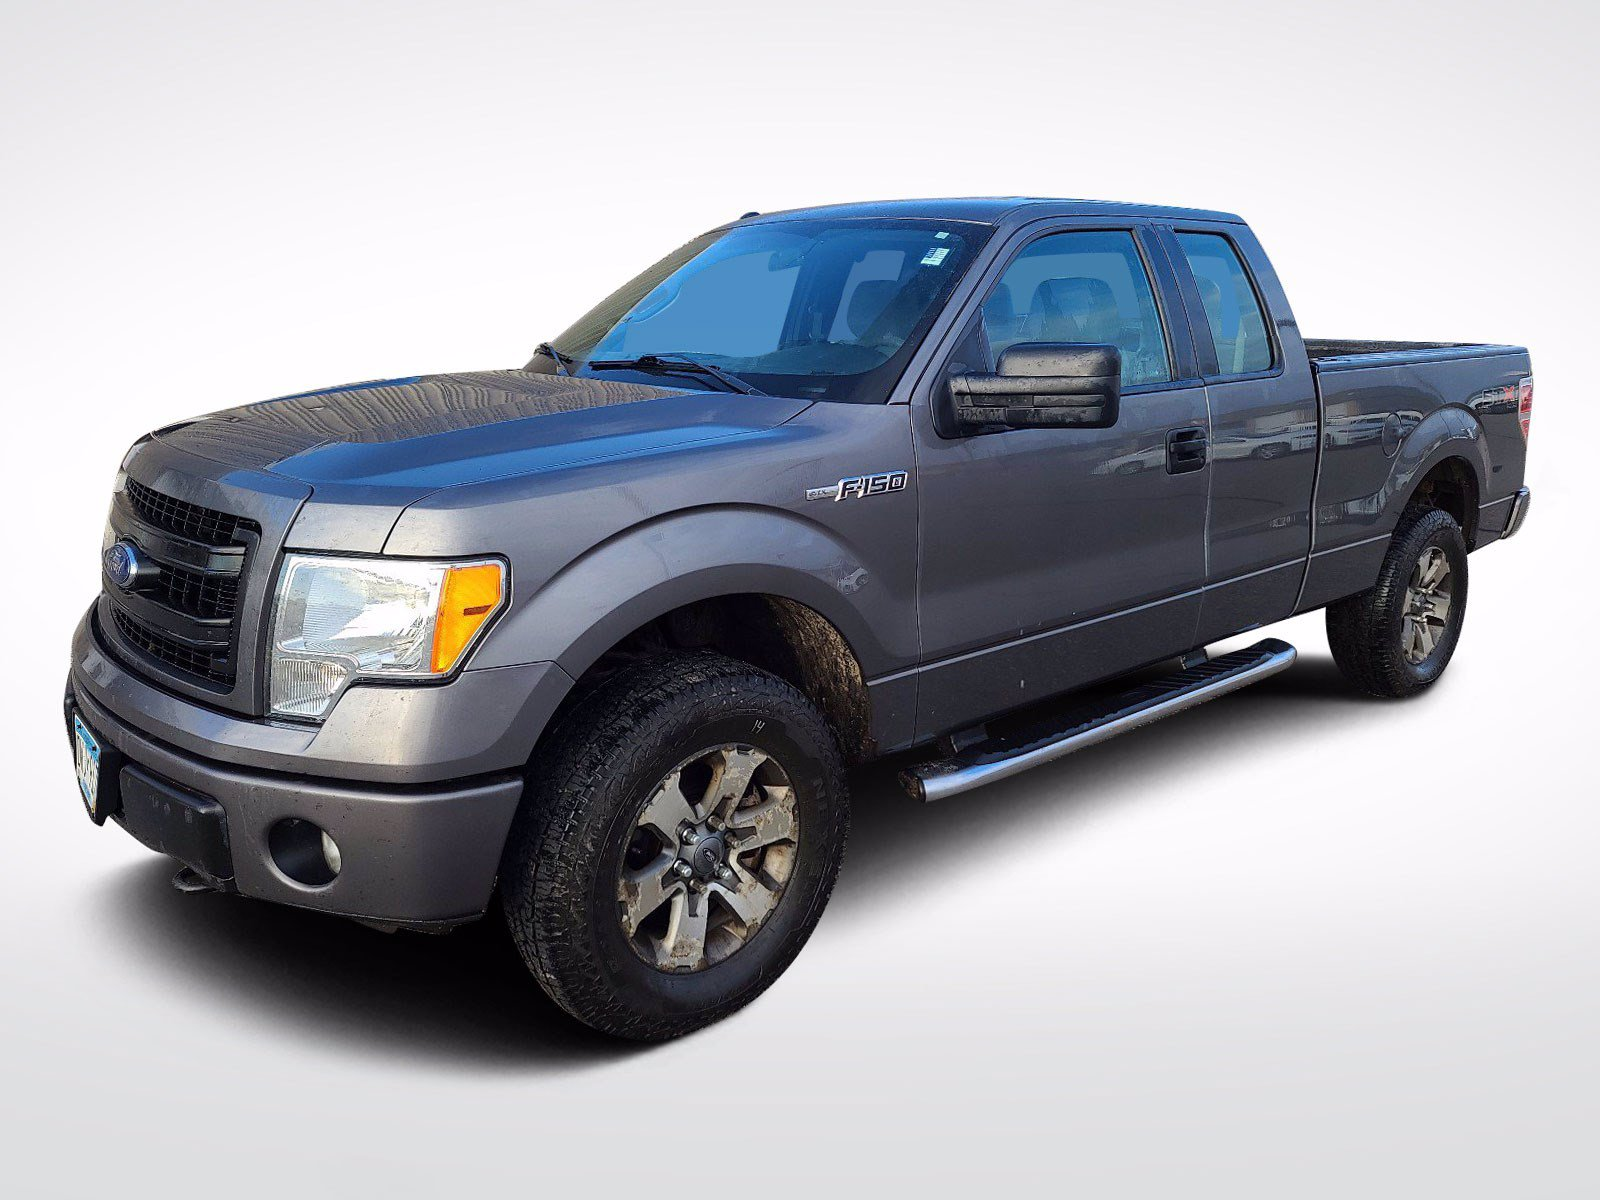 Used 2013 Ford F-150 STX with VIN 1FTFX1EF1DFD03719 for sale in Baxter, Minnesota